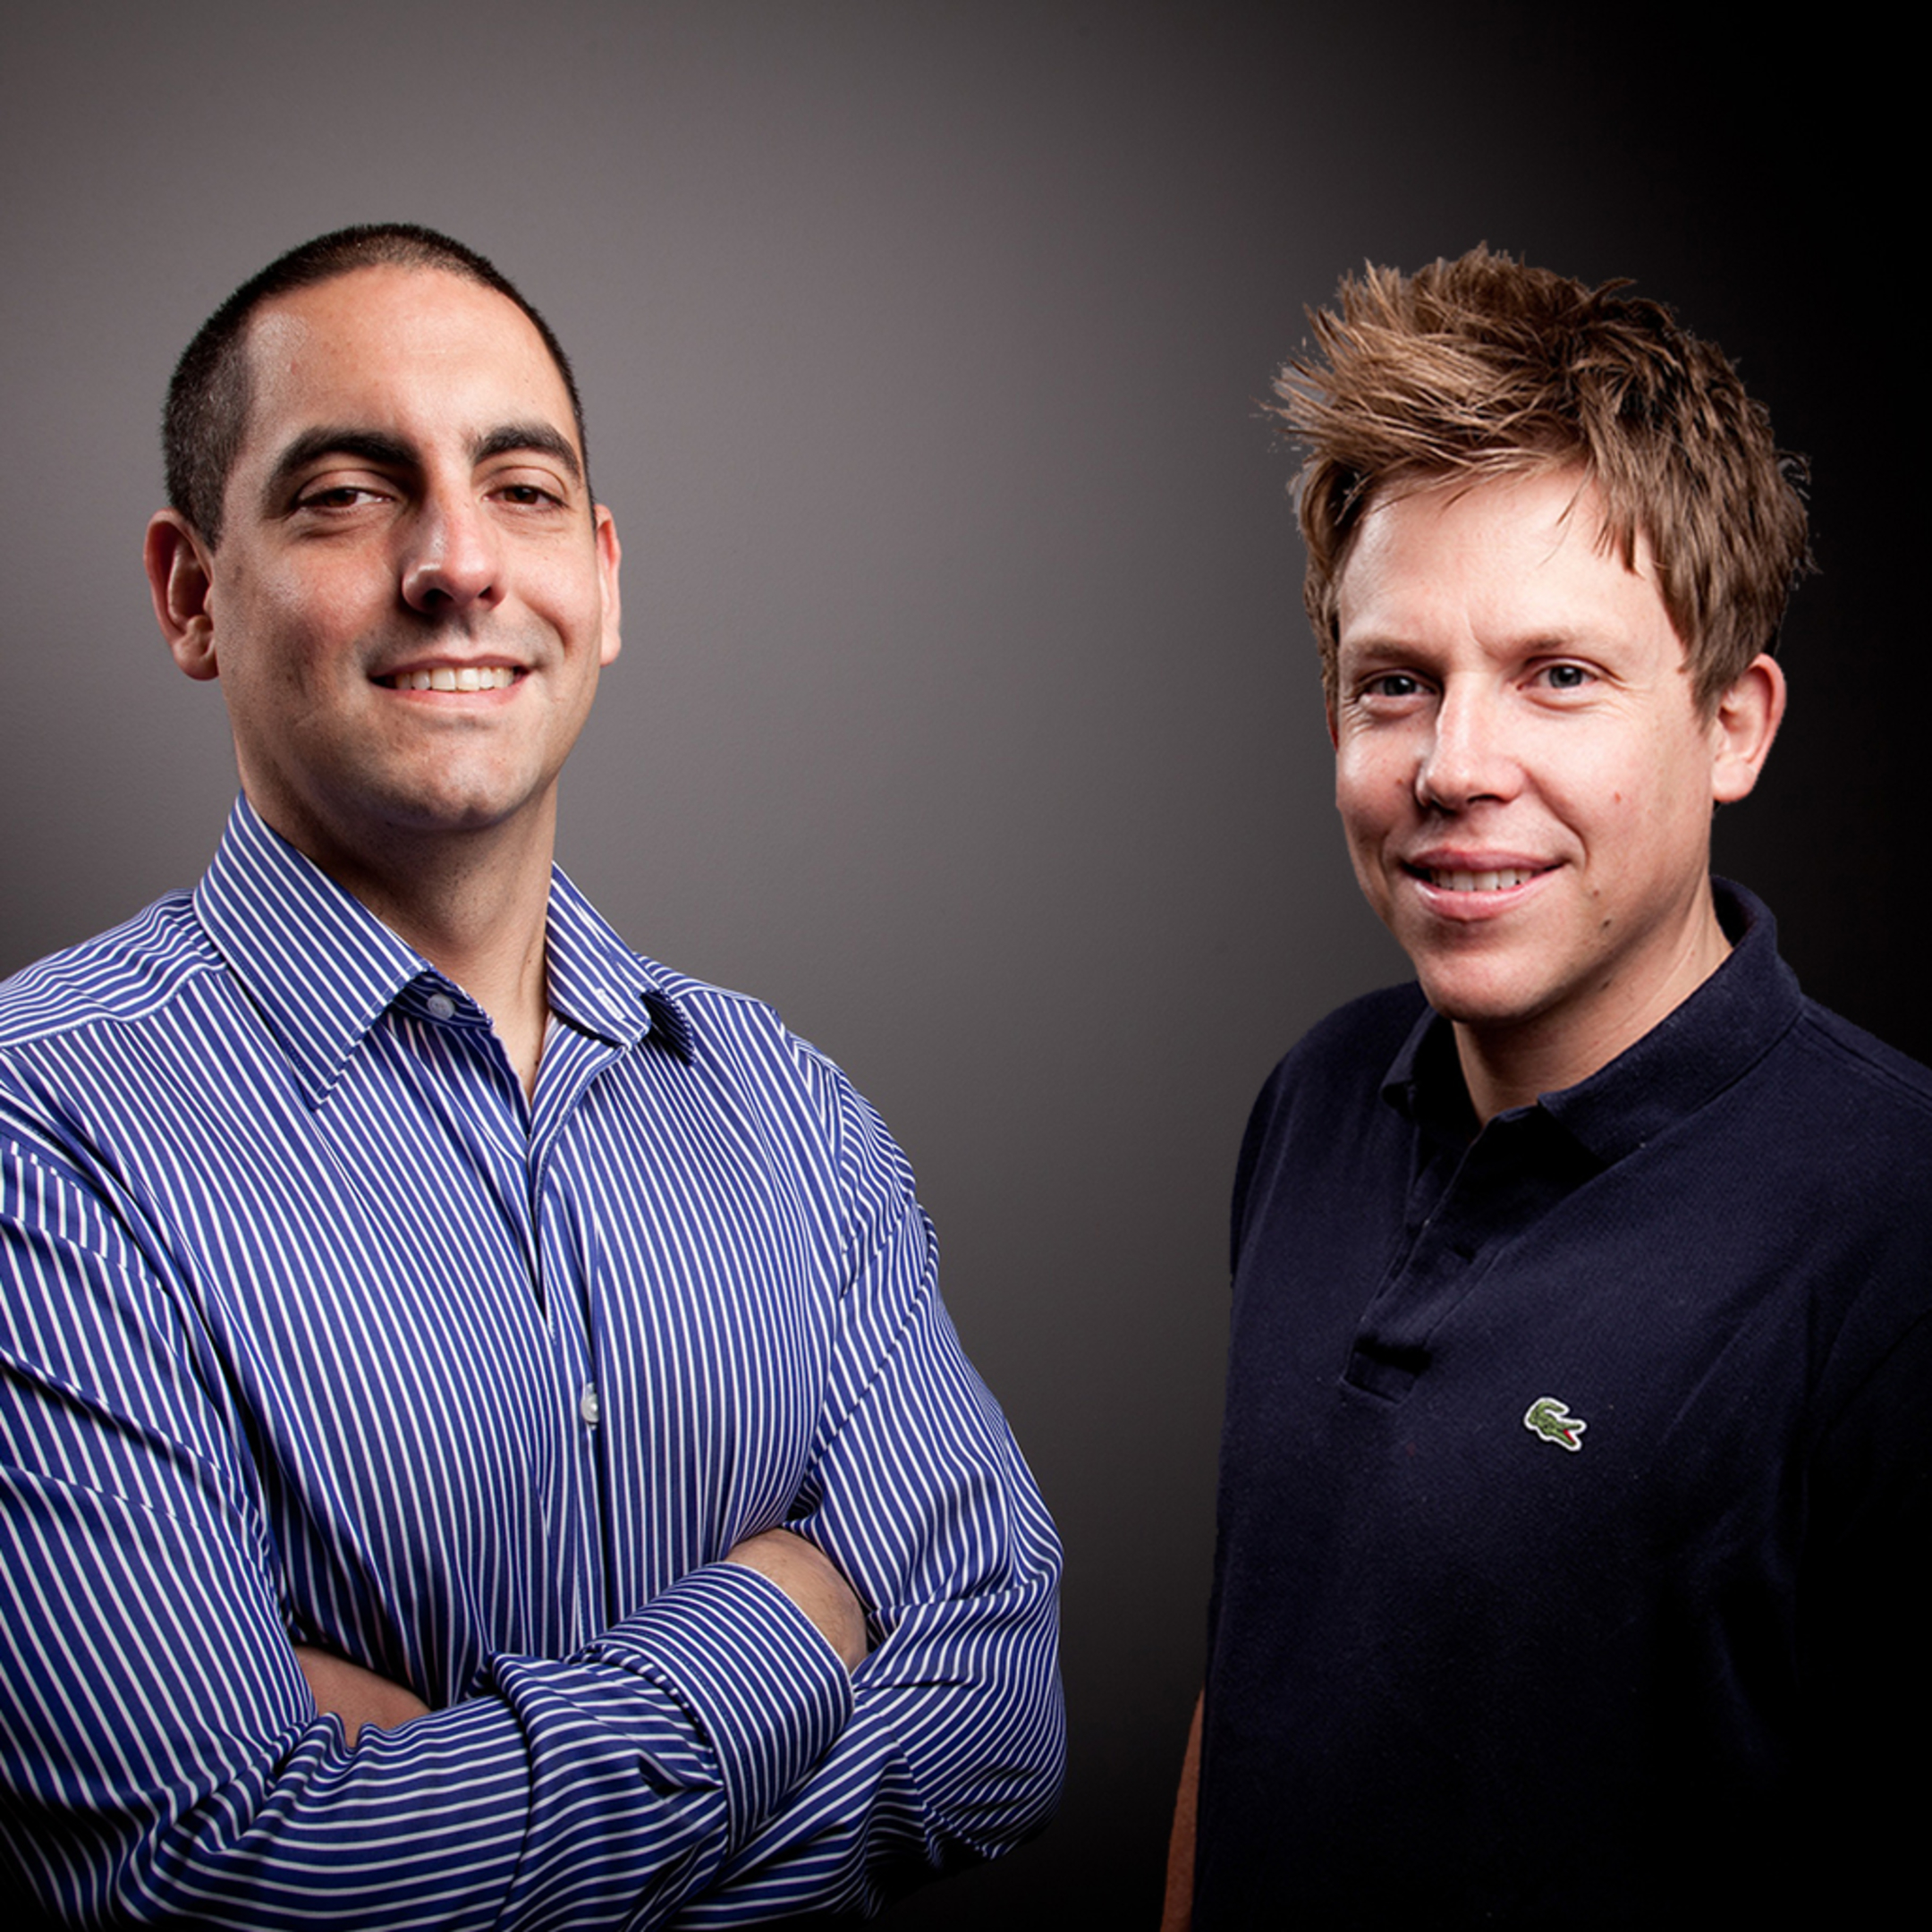 See Daniel Guasco & Wayne Gosling (Groupon S.A.) at Startup Grind Cape Town